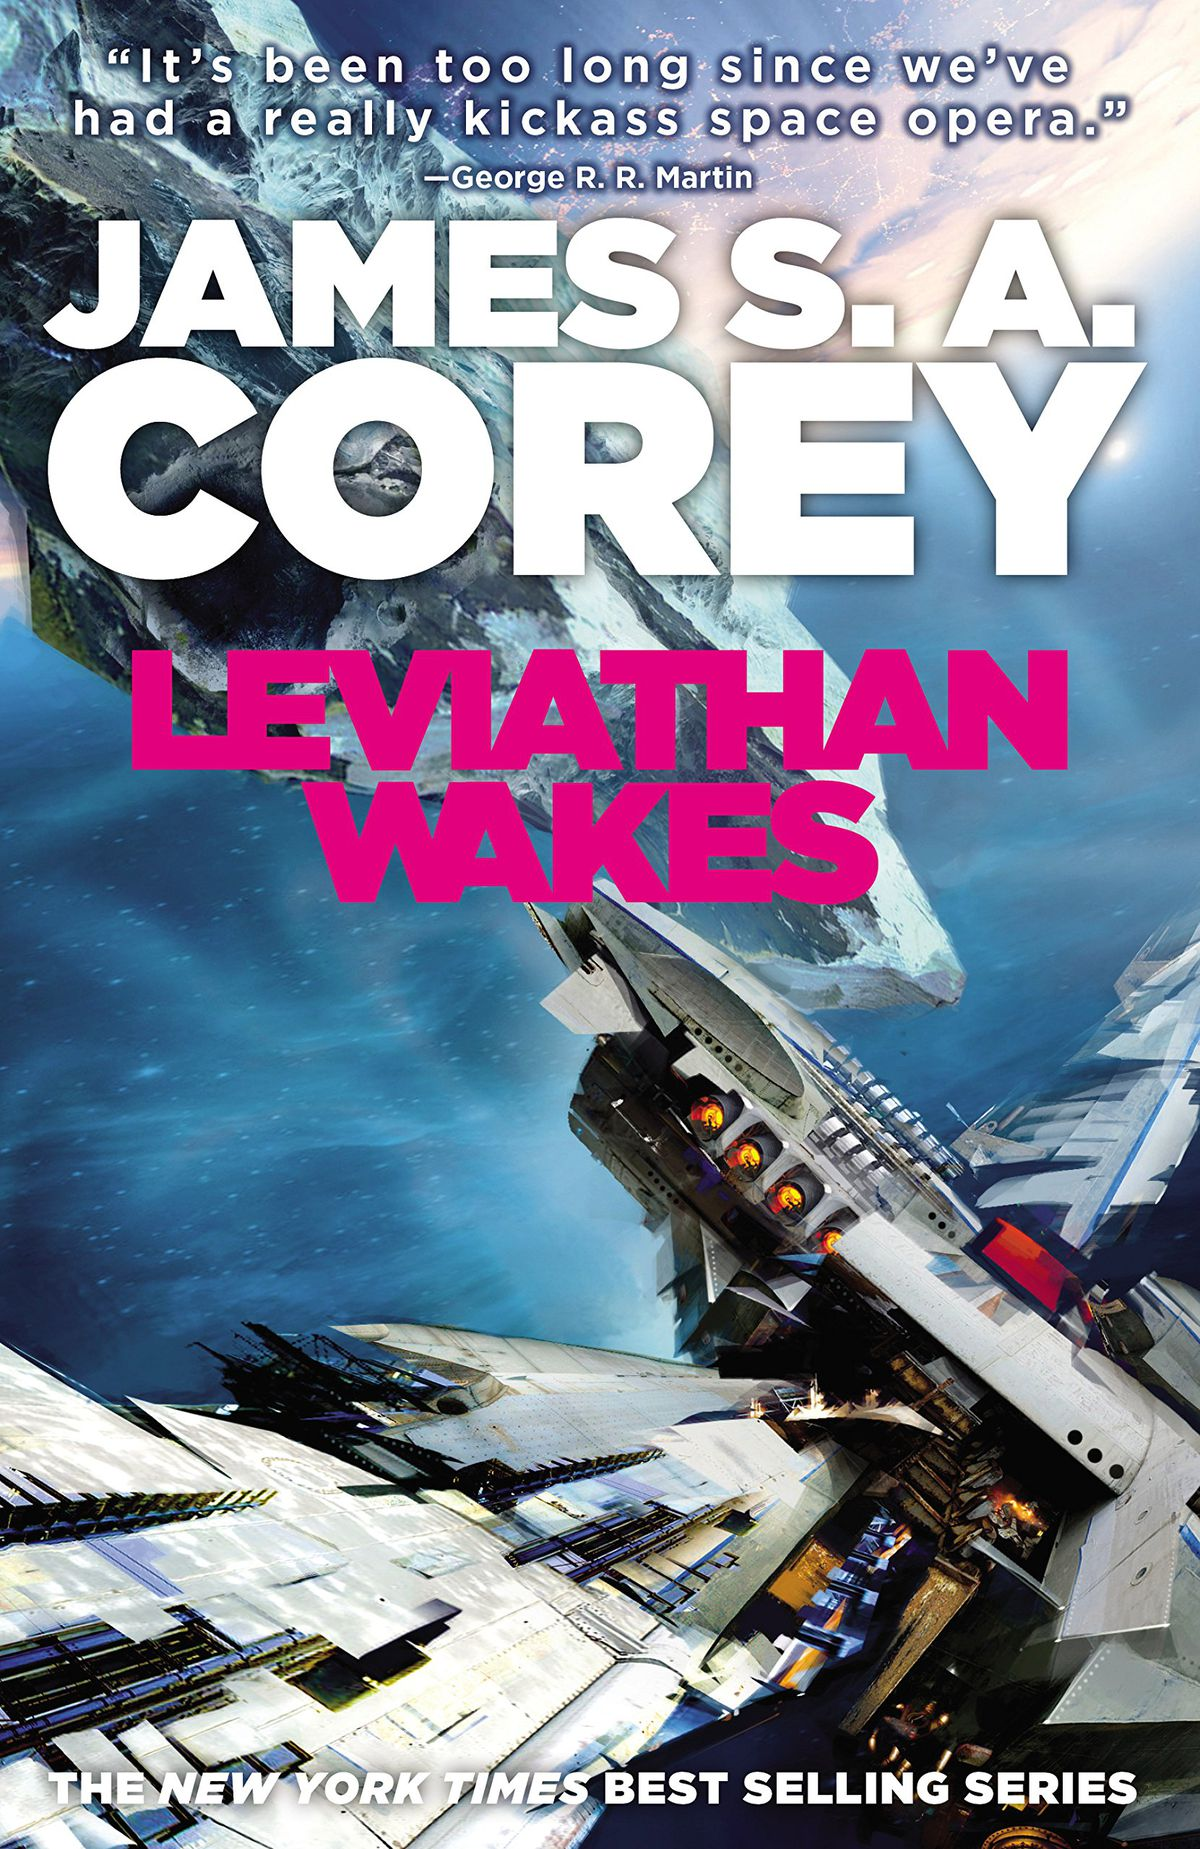 Leviathan Wakes by James S.A. Corey cover